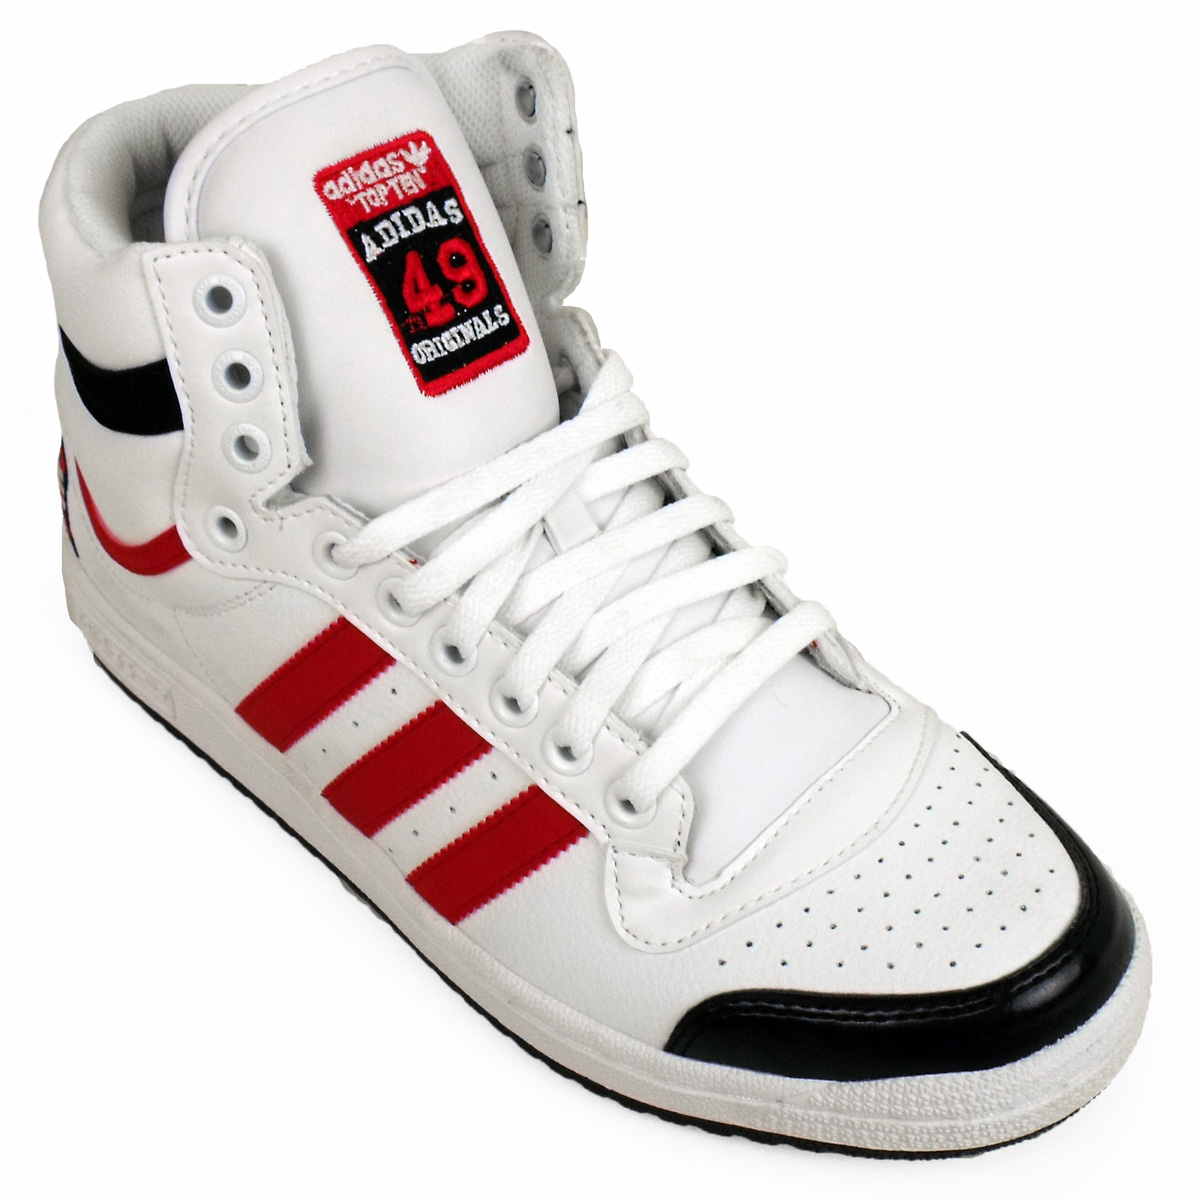 Mens adidas top ten hi tops basketball boot trainers ankle skate shoe